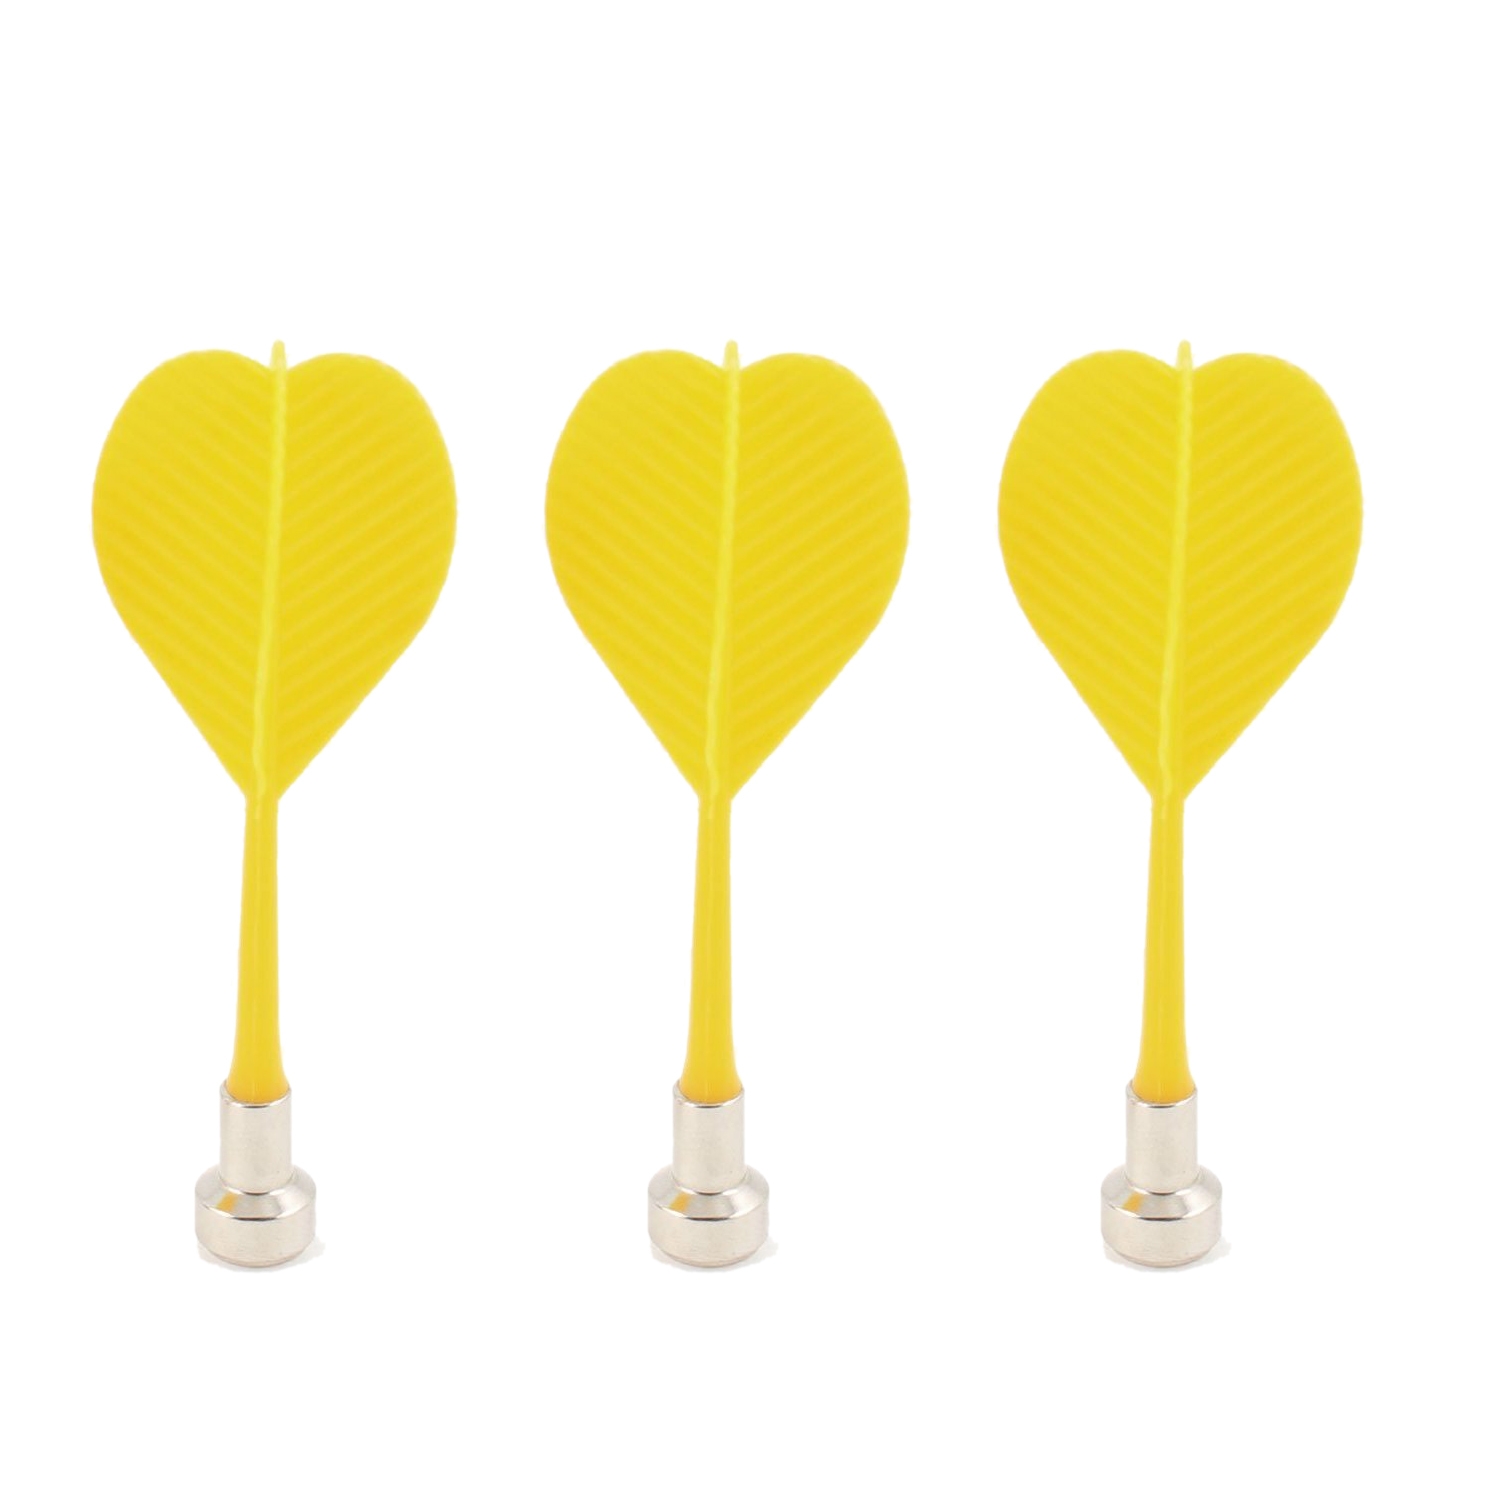 3Pcs Bullseye Target Game Plastic Magnetic Flat Tipped Darts-Yellow ...